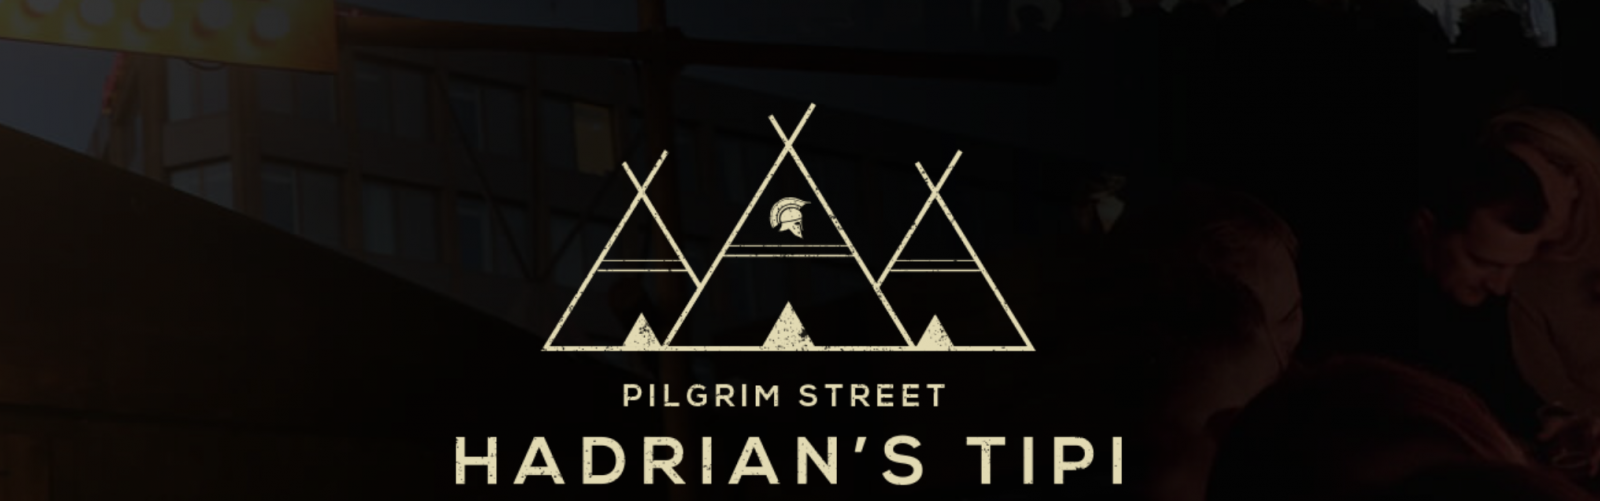 Hadrian's Tipi on Pilgrim Street re-launching october 27th 2017 with added street food village